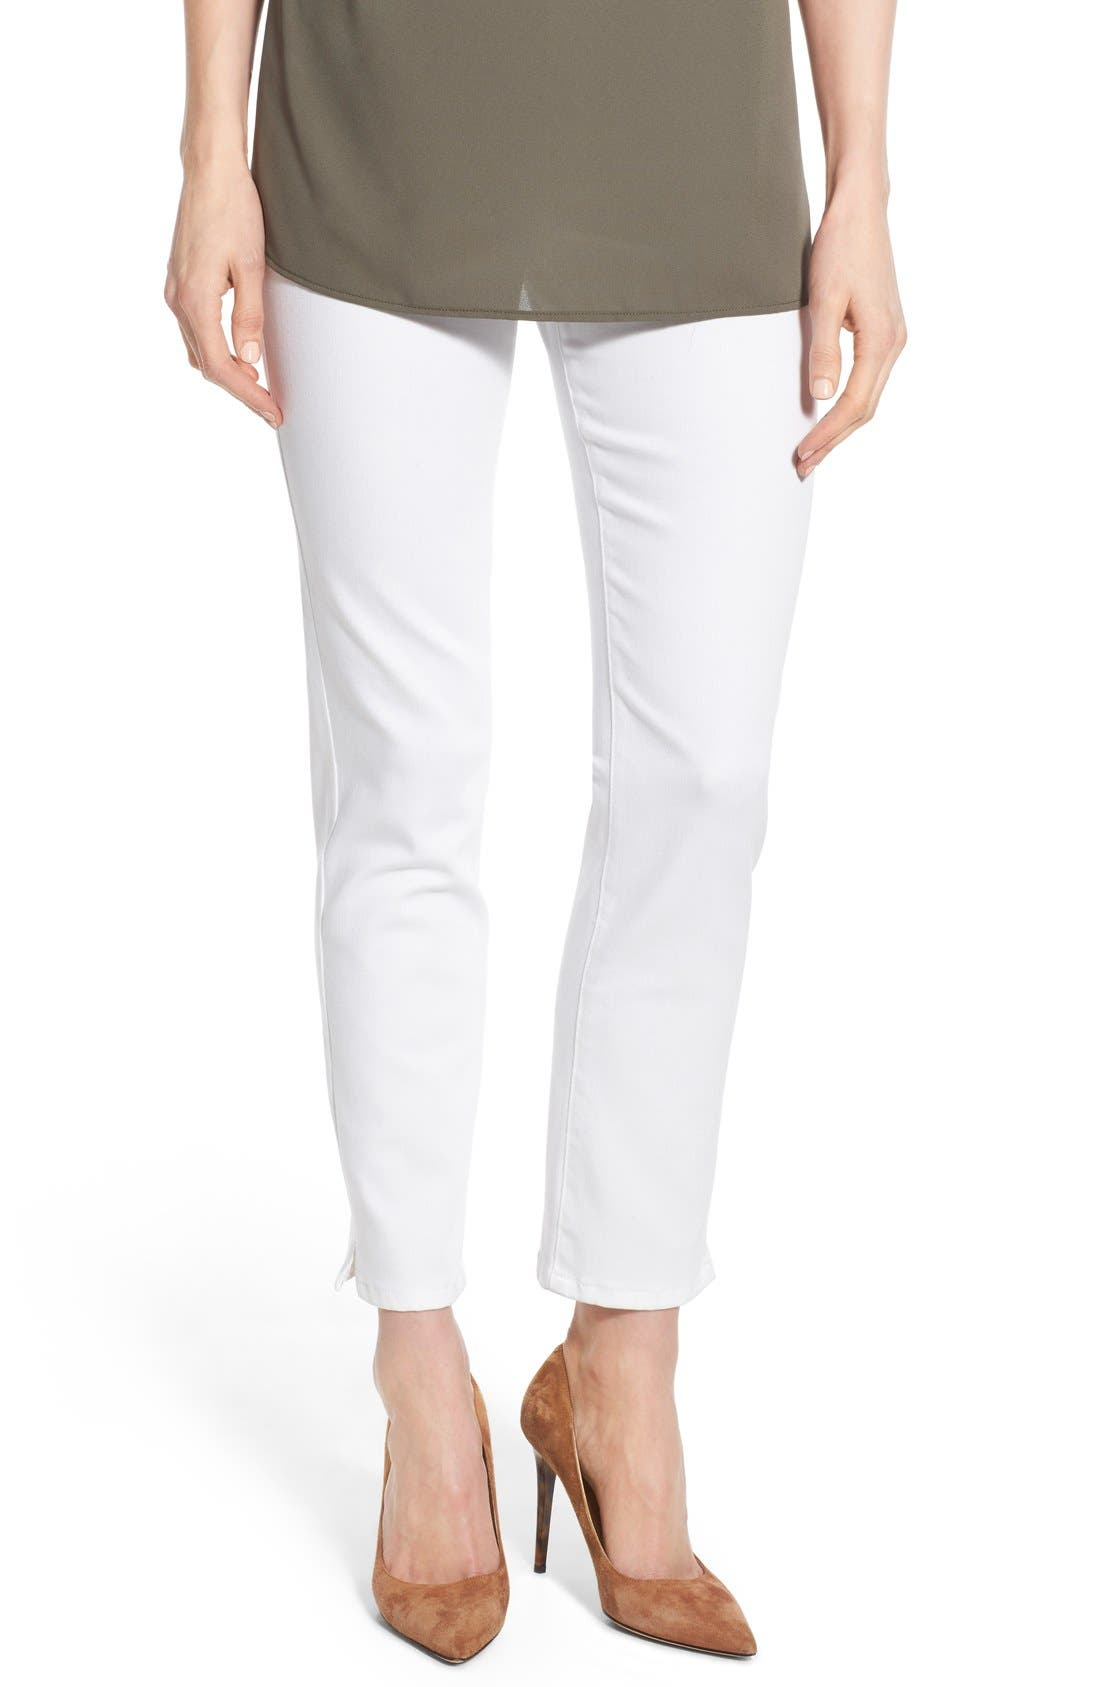 Alternate Image 1 Selected - NYDJ 'Millie' Pull-On Stretch Ankle Skinny Jeans (Endless White) (Regular & Petite)